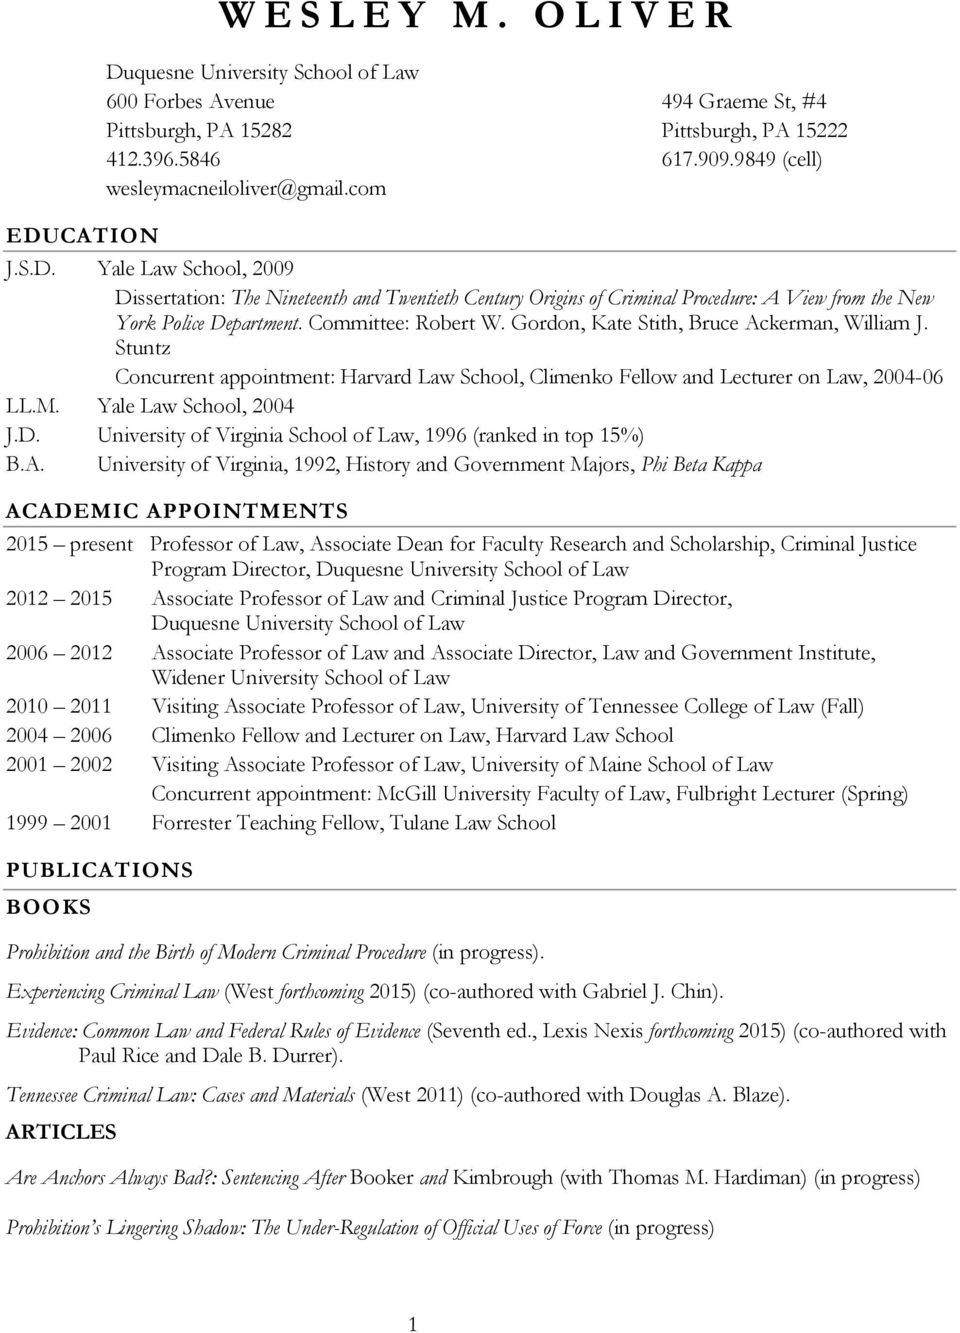 Committee: Robert W. Gordon, Kate Stith, Bruce Ackerman, William J. Stuntz Concurrent appointment: Harvard Law School, Climenko Fellow and Lecturer on Law, 2004-06 LL.M. Yale Law School, 2004 J.D.